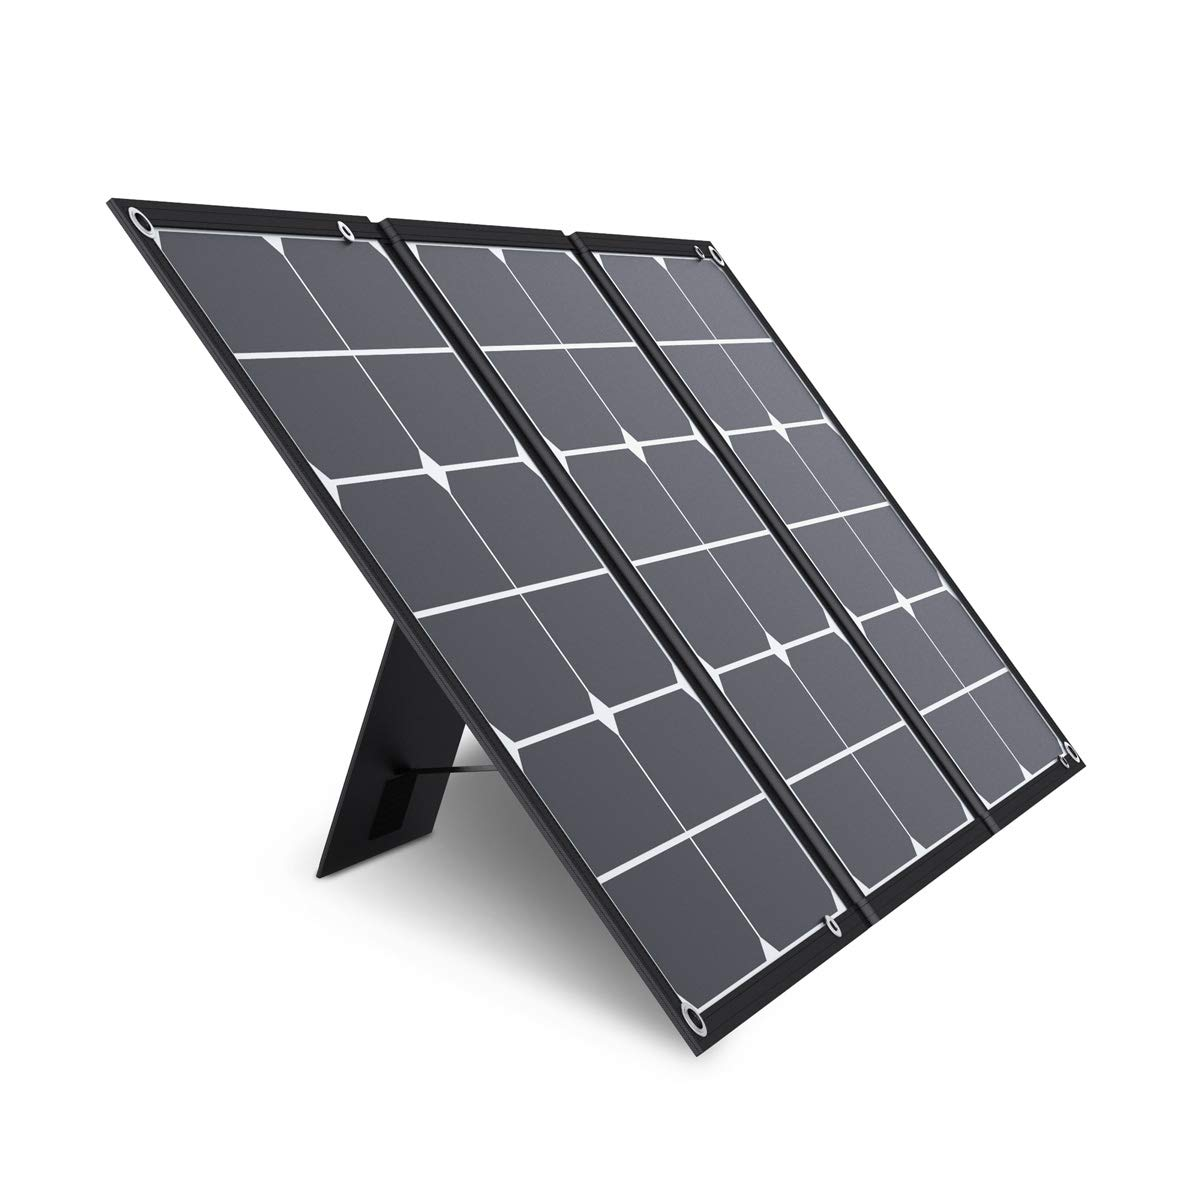 Jackery SolarSaga 60W Solar Panel for Explorer 160/240/500 and HLS290 as Portable Solar Generator, Portable Foldable Solar Charger for Summer Camping Van RV(Can't Charge Explorer 440/ PowerPro) by Jackery